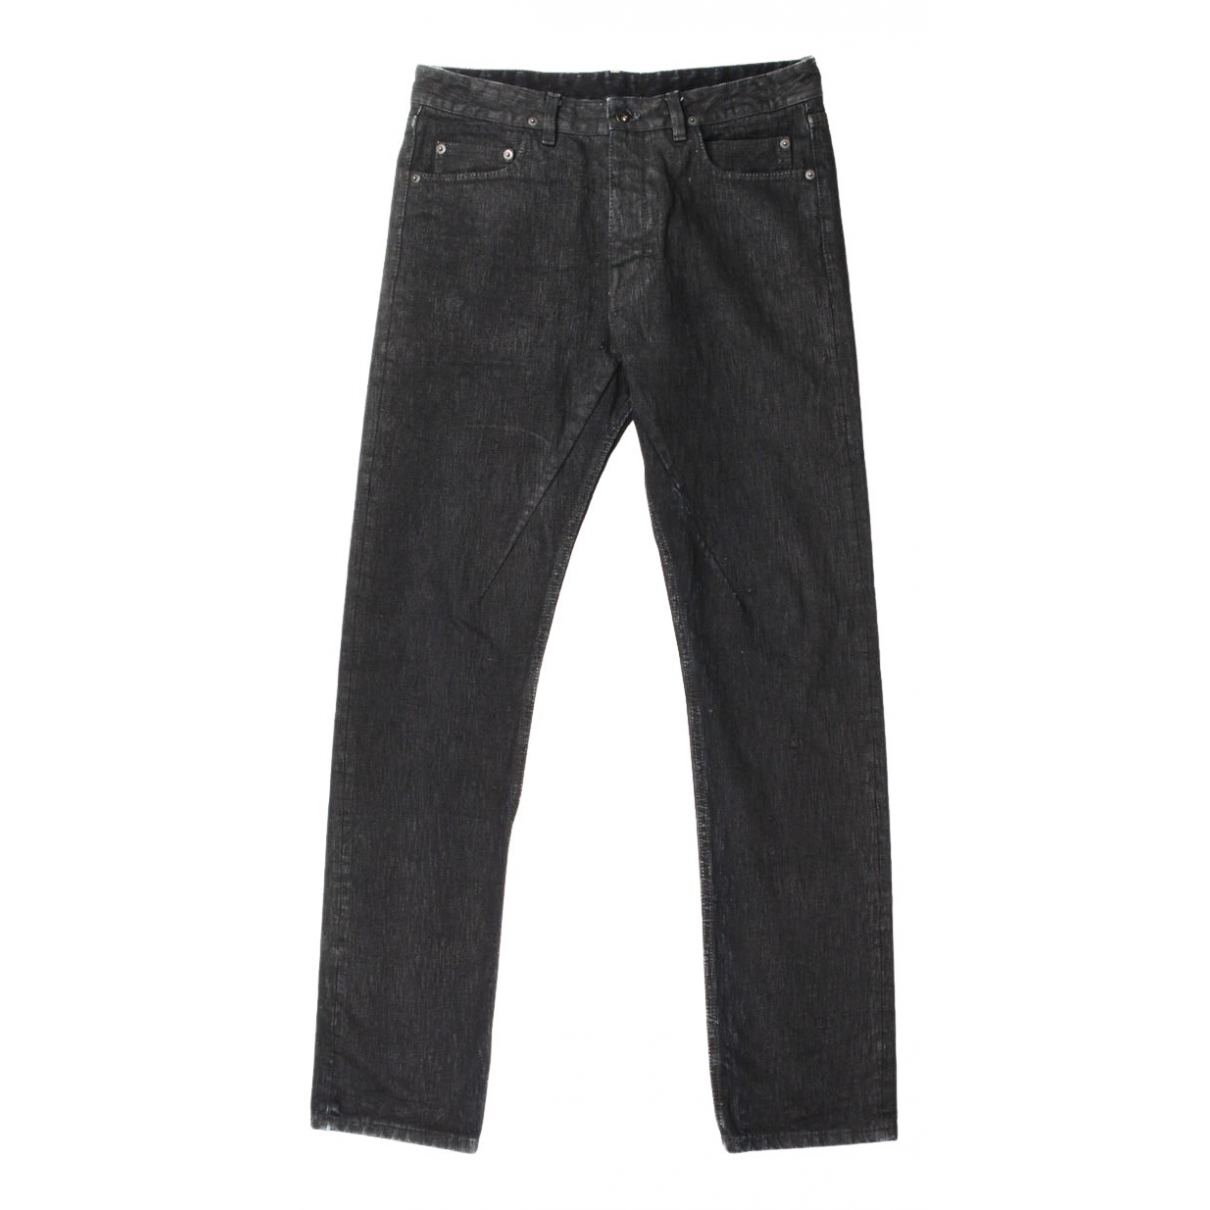 Rick Owens Drkshdw N Black Cotton Jeans for Men 31 US